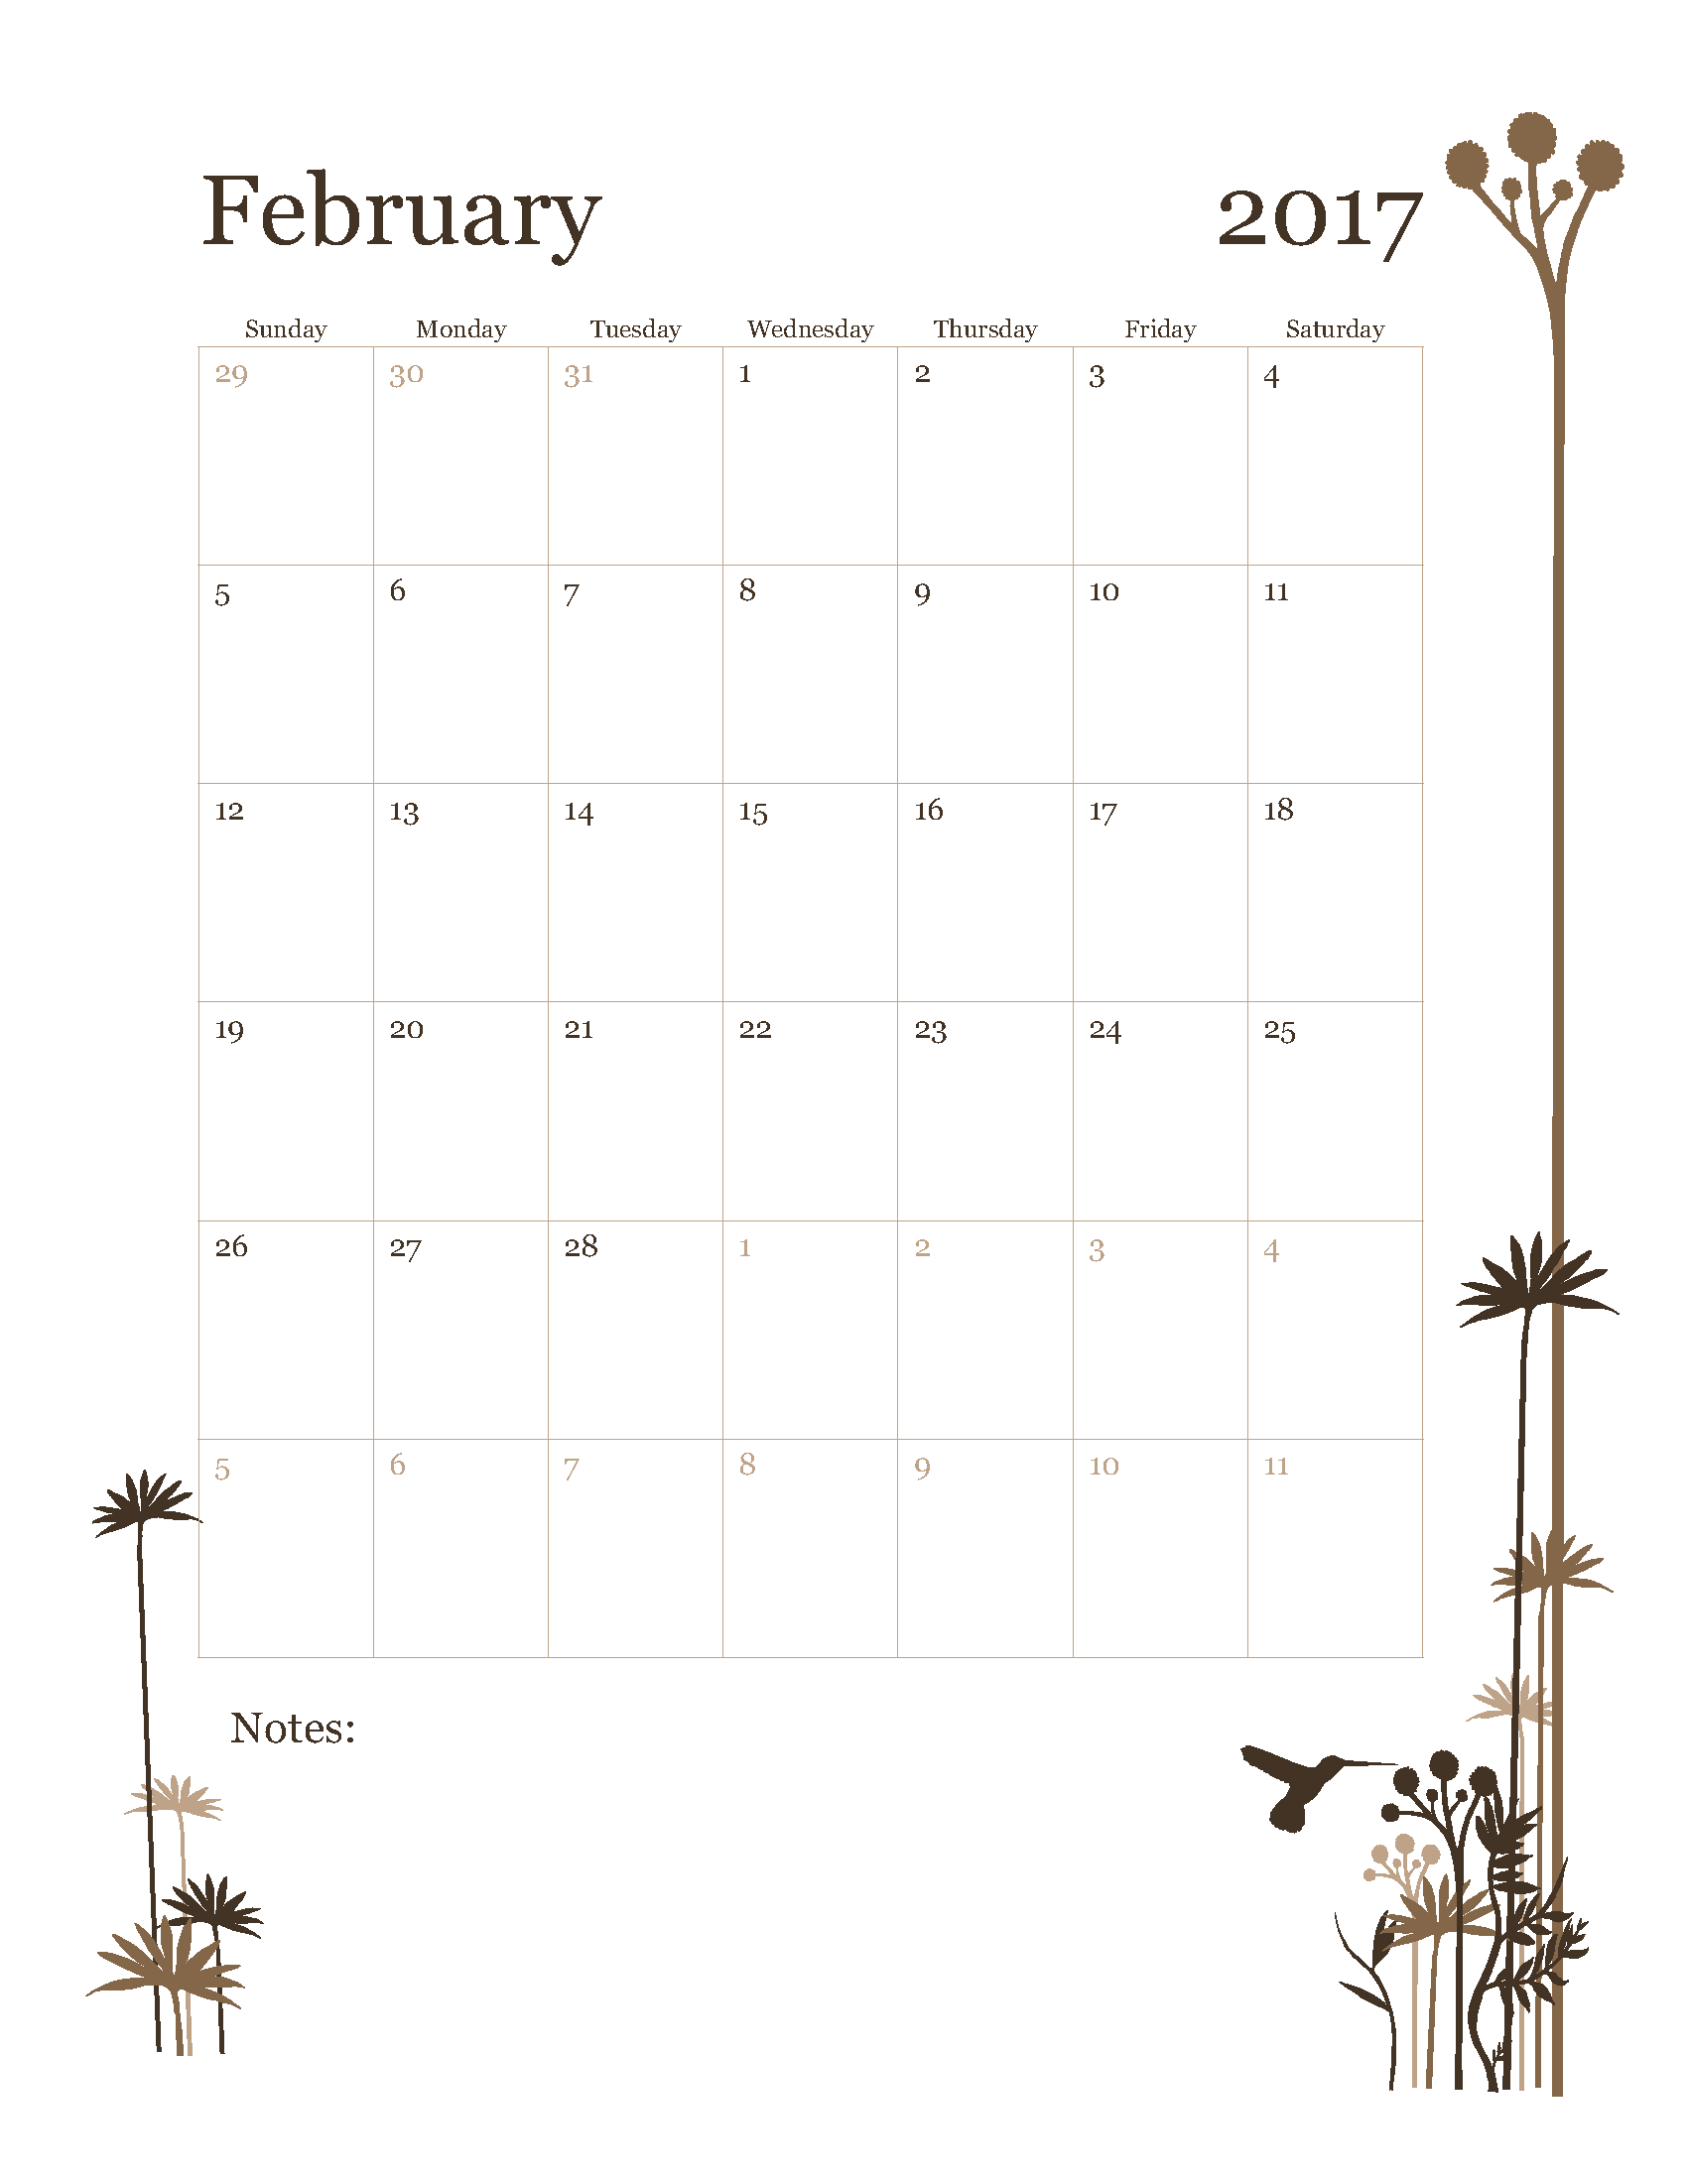 Free February 2017 Calendar Template Printable Start on Sunday - HummingBird design